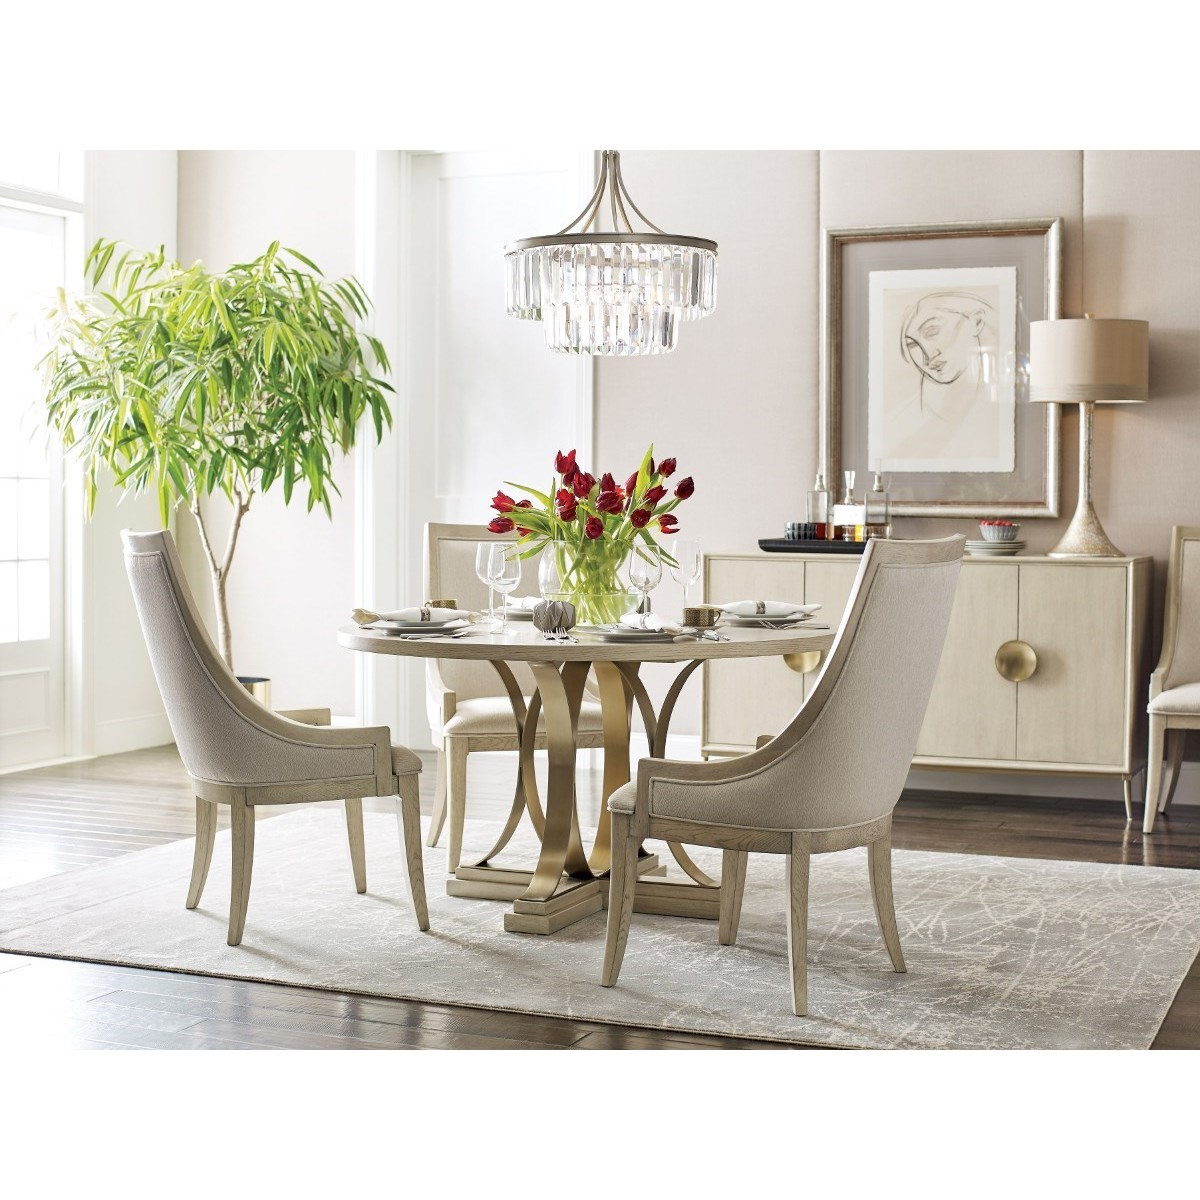 Lenox Casual Dining Room Group by American Drew at Stoney Creek Furniture